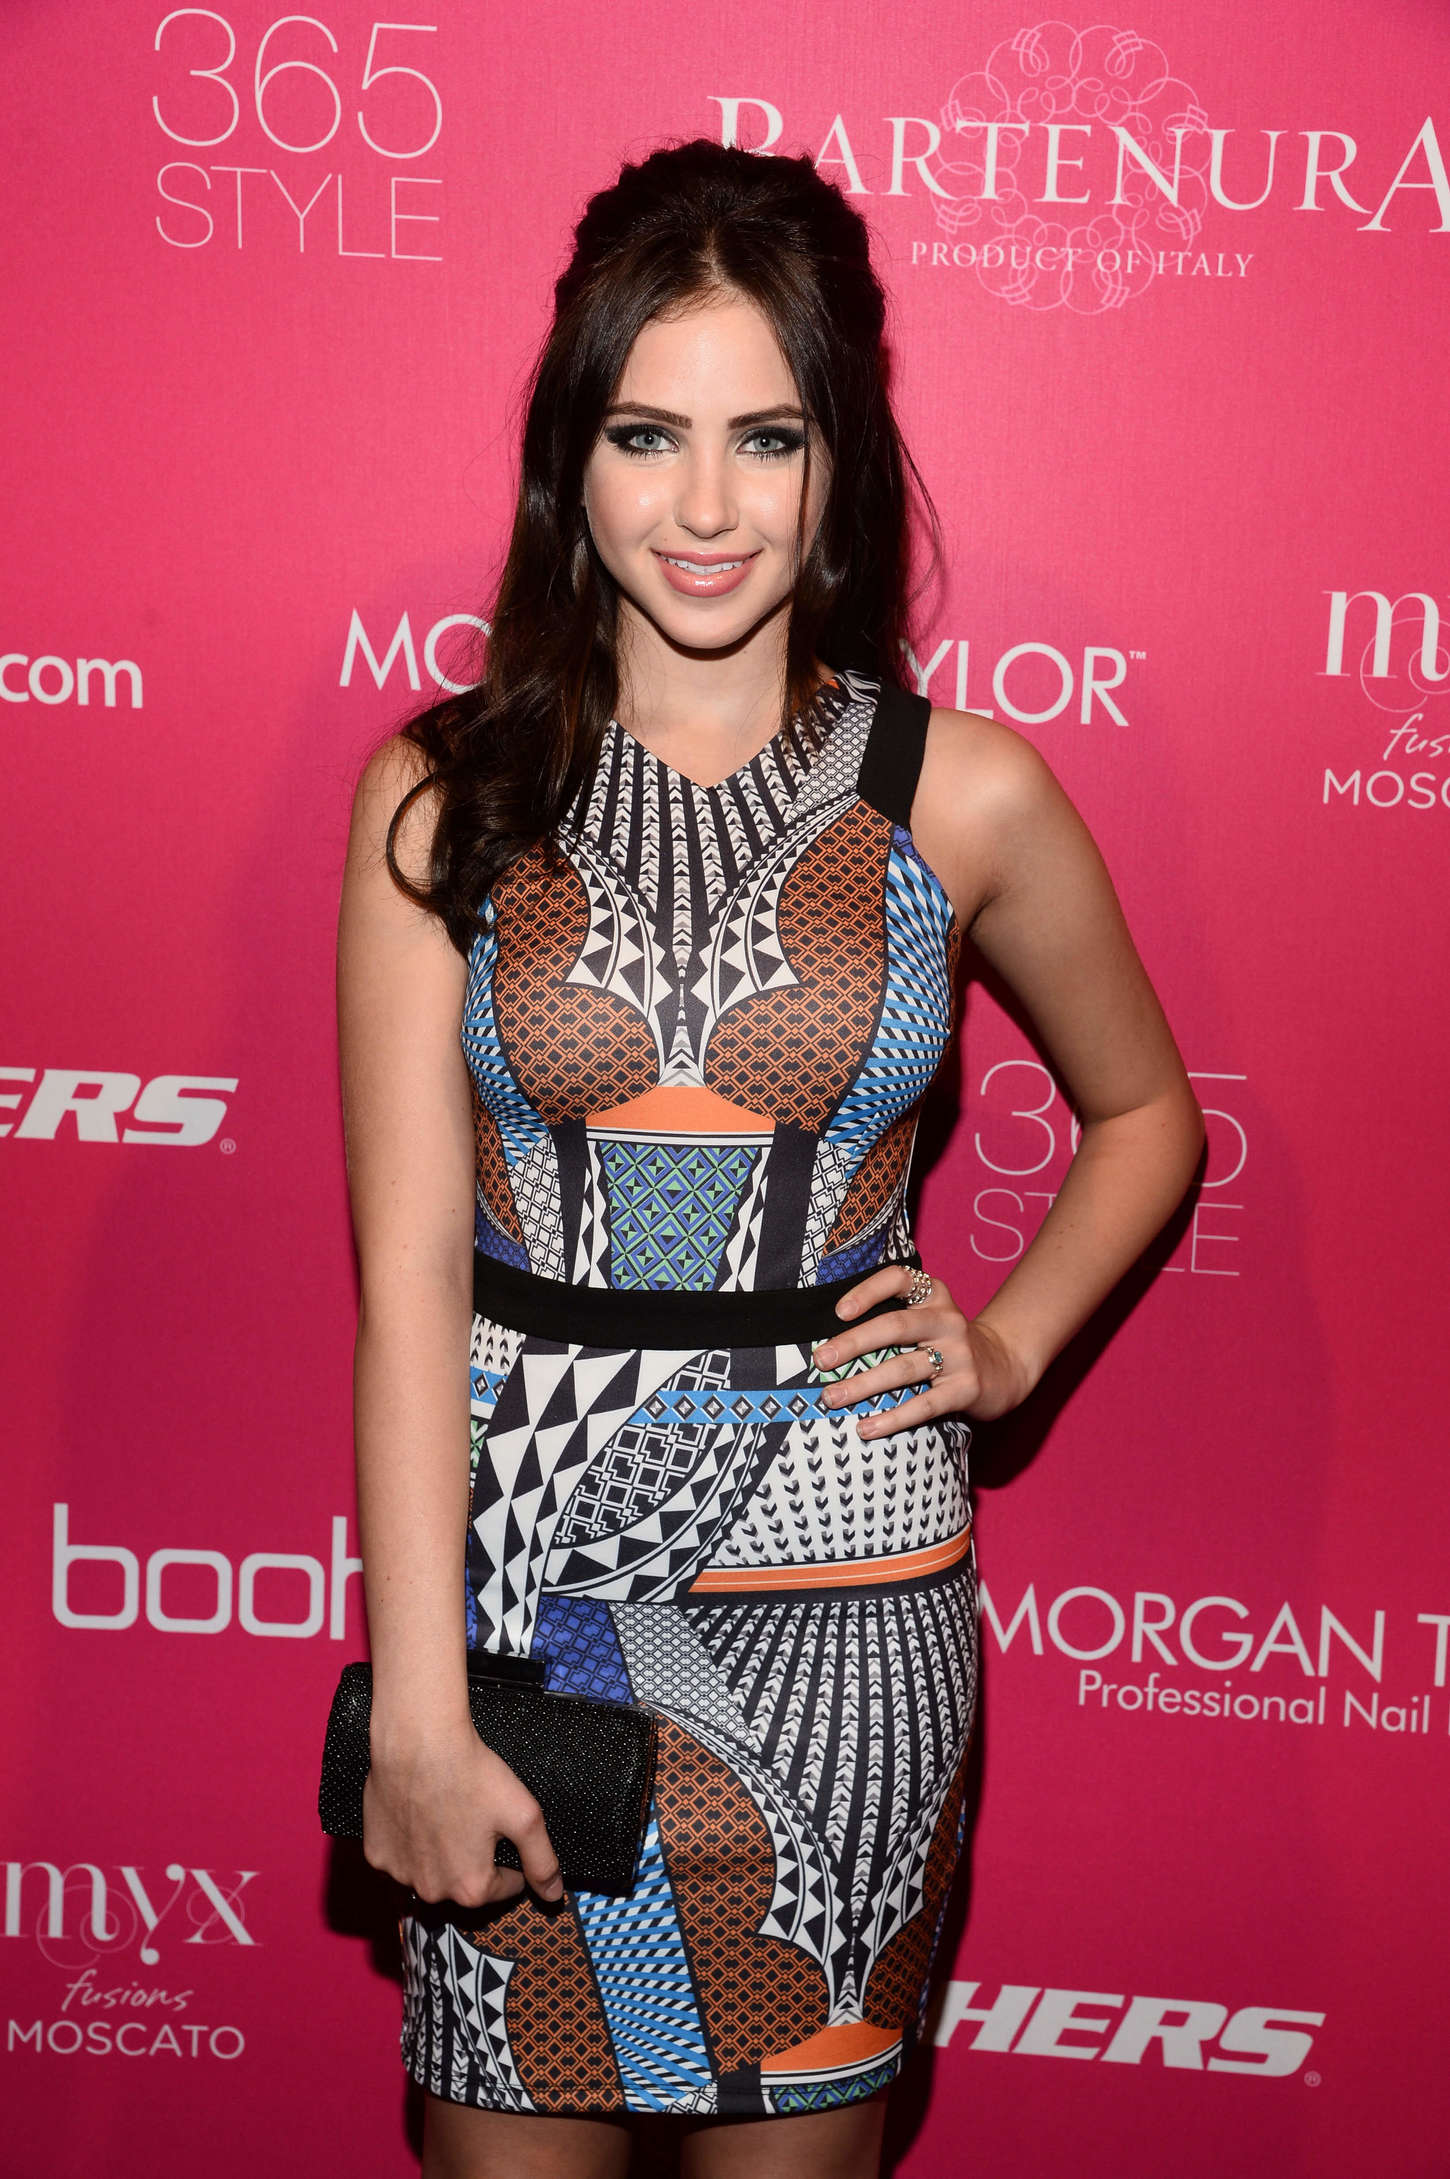 Ryan Newman OK! Fashion Week Event in New York